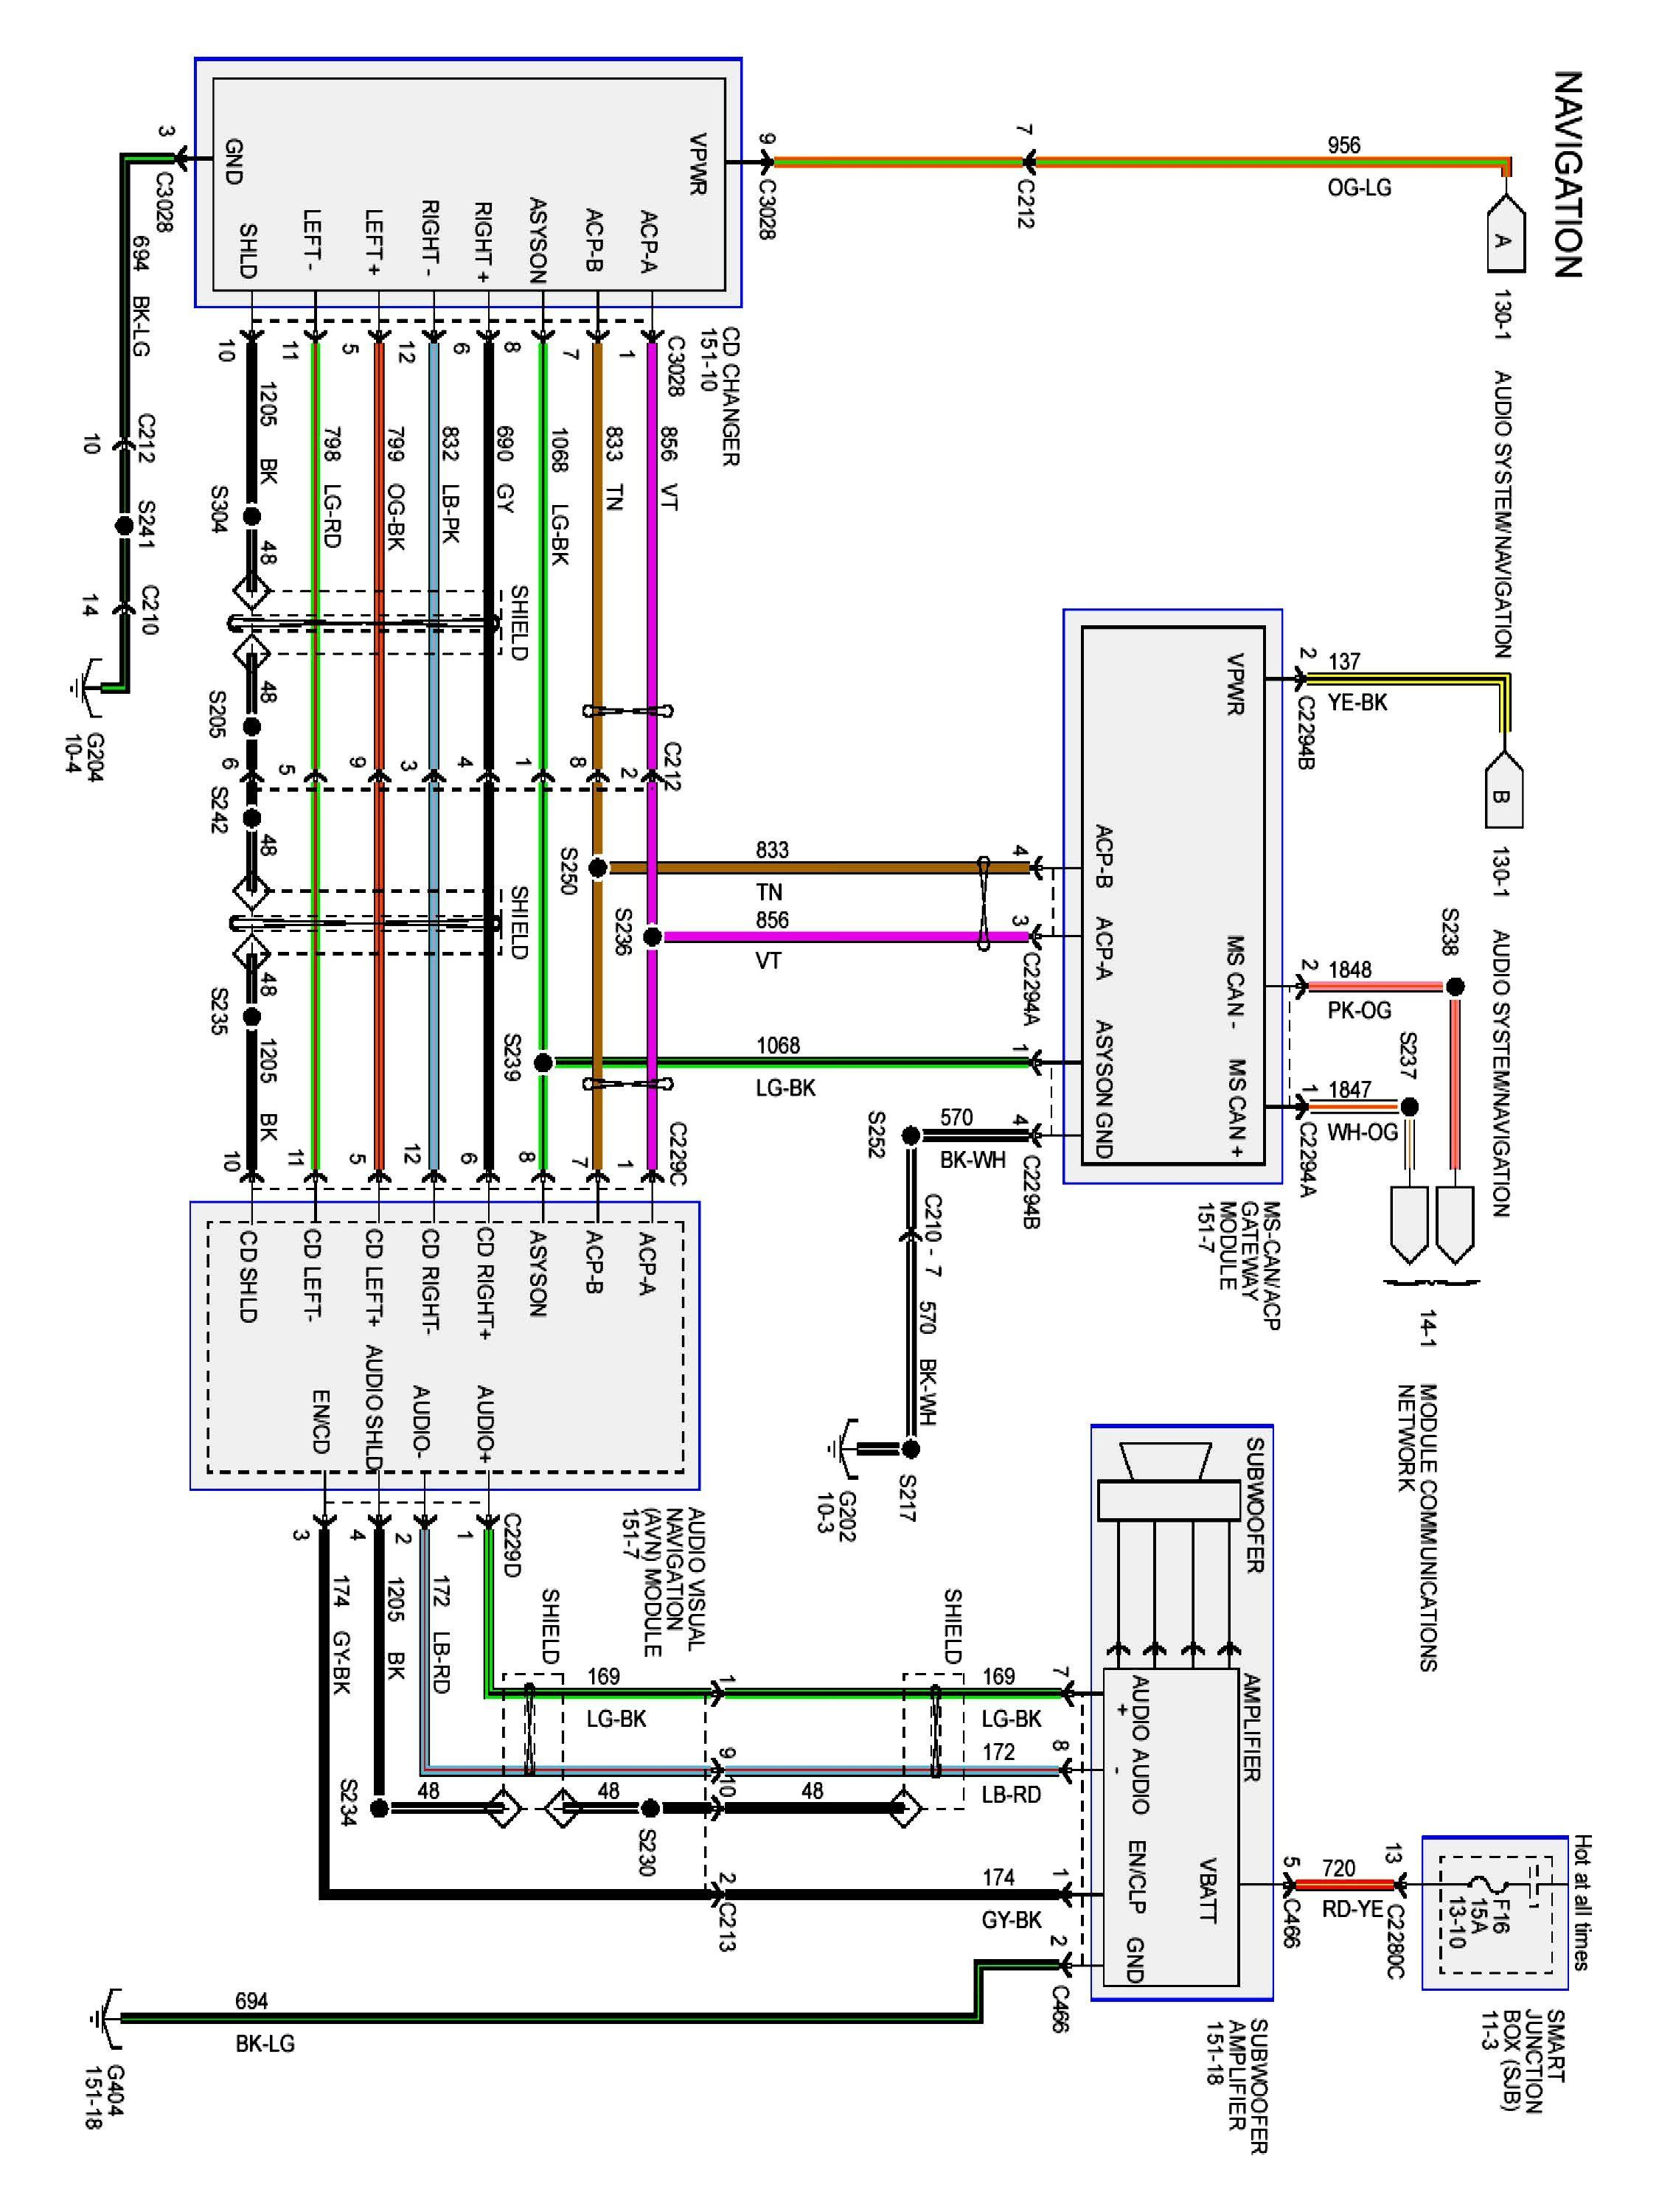 Toyota Jbl Amplifier Wiring Diagram | wiring diagram ... on